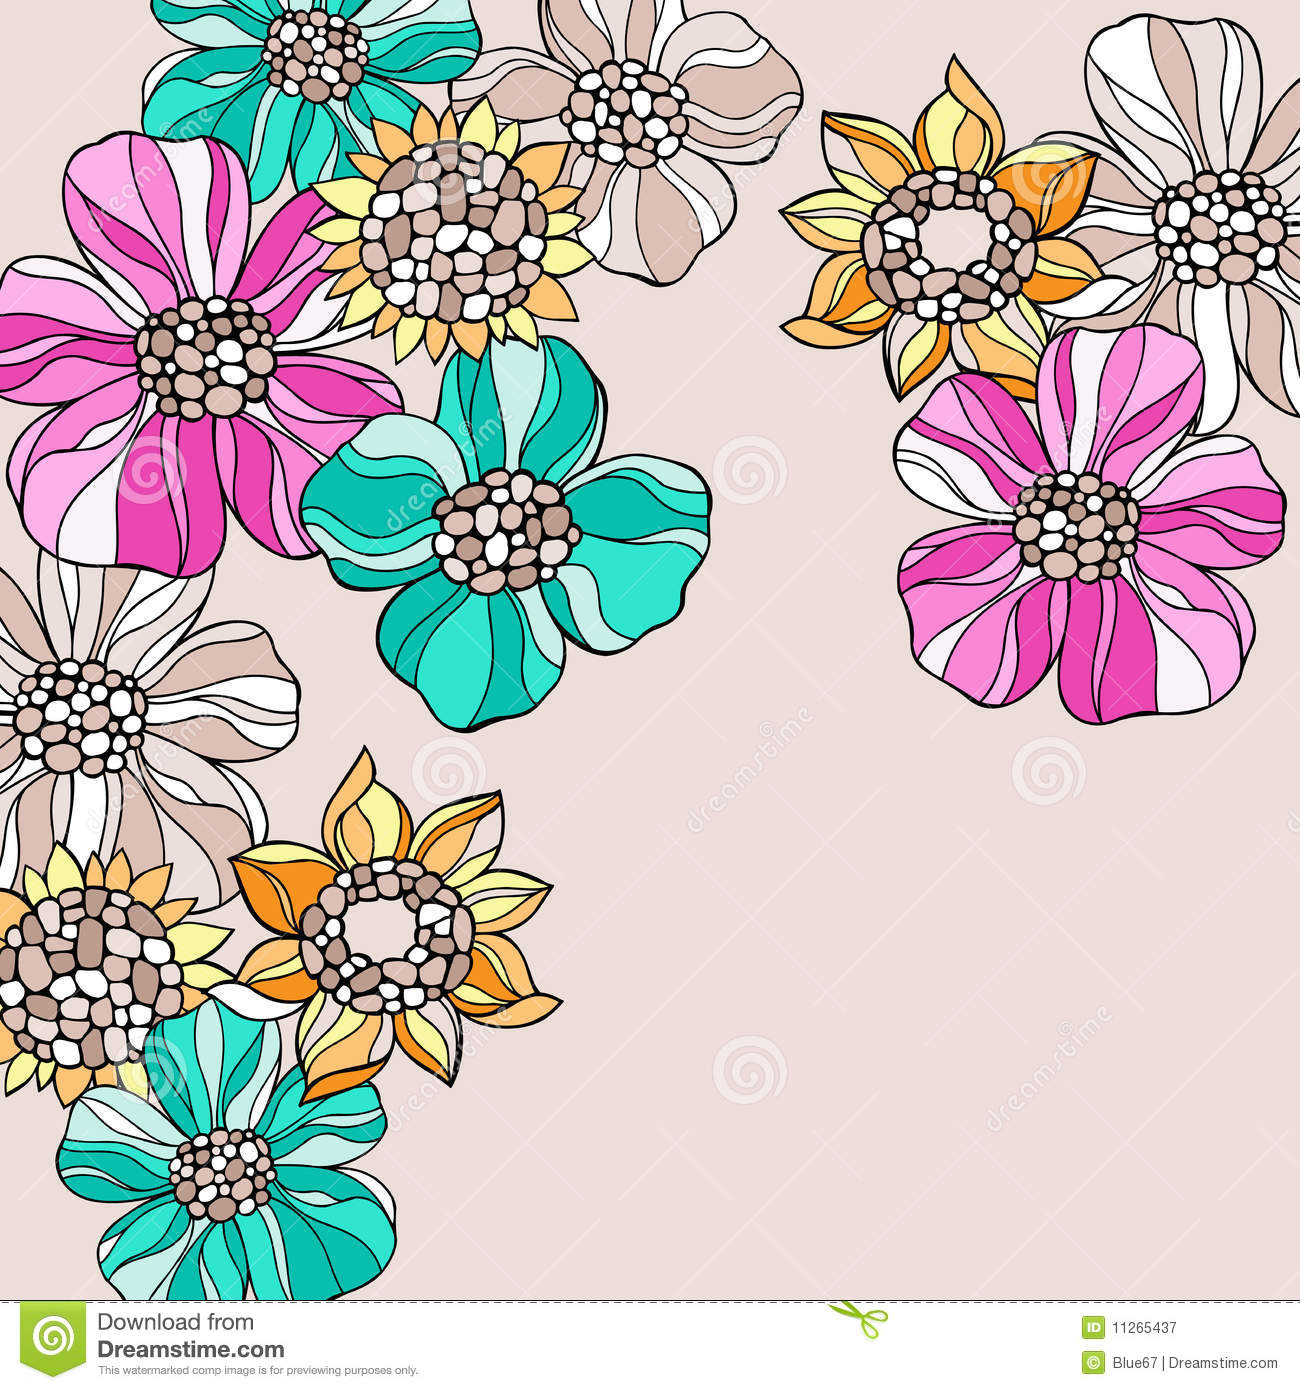 Psychedelic Fun With Garden >> Psychedelic Doodle Flowers Vector Stock Vector - Illustration of design, illustration: 11265437